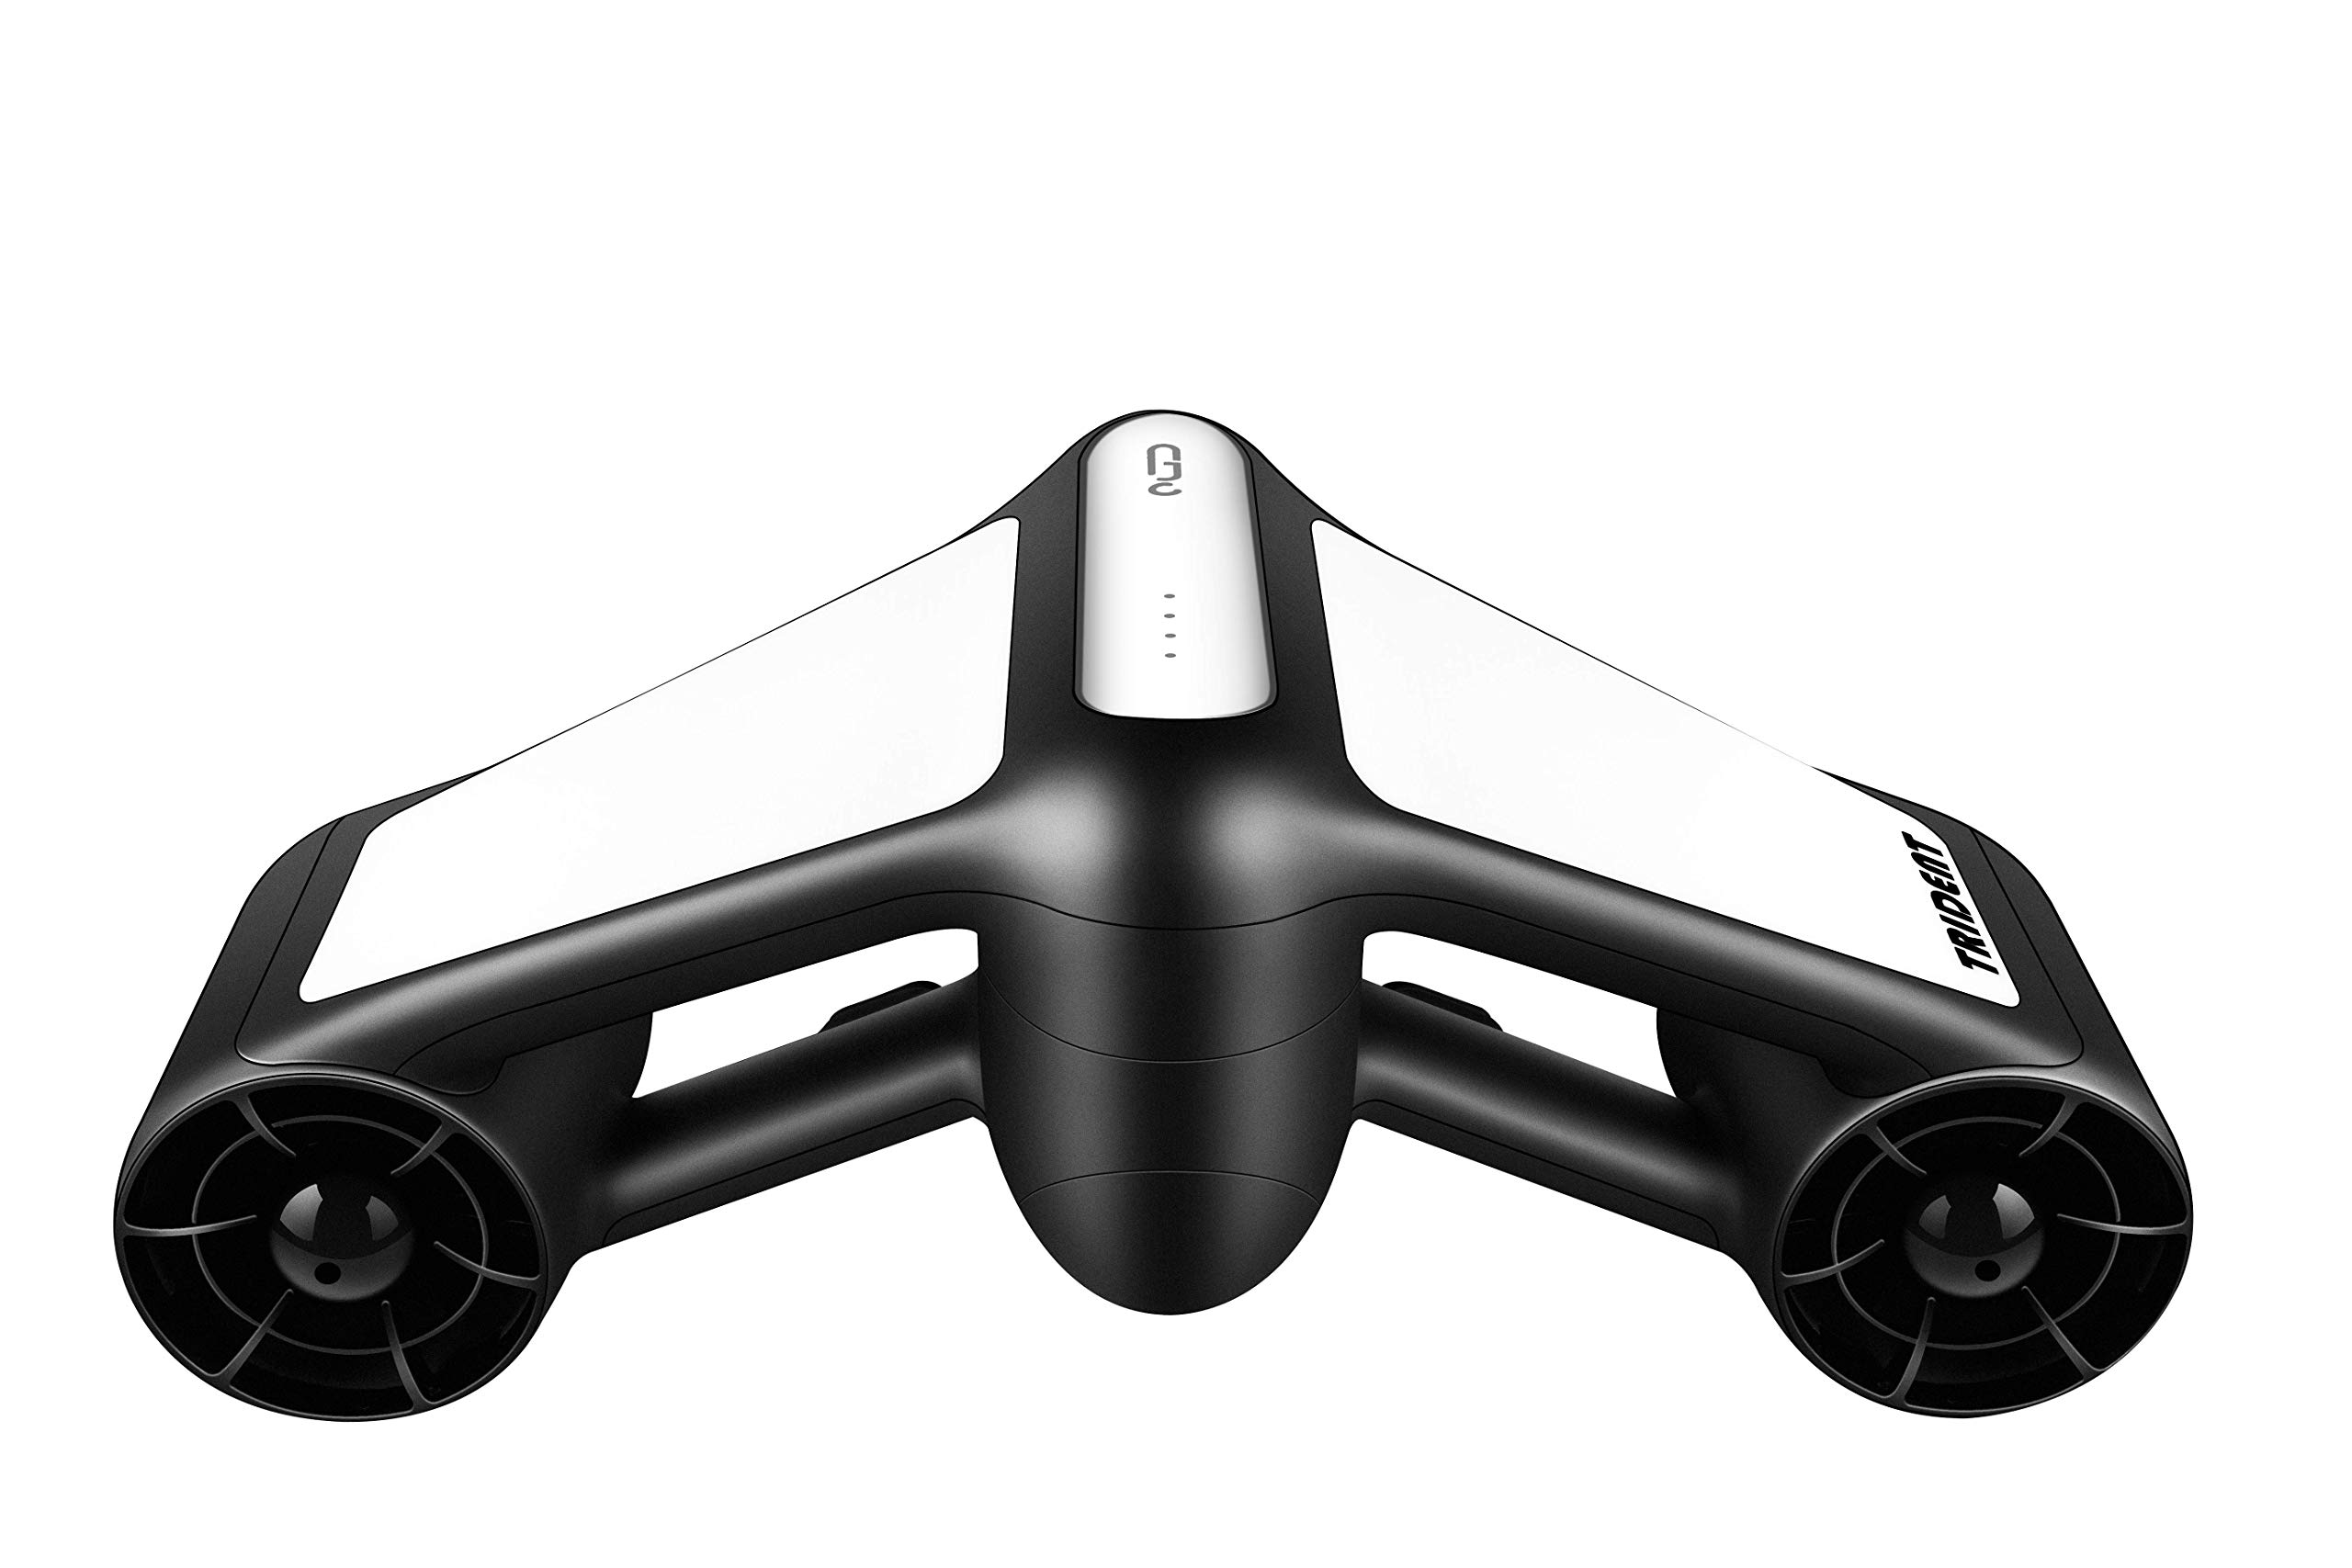 Geneinno Underwater Scooter Dual Propellers with 2-Speed Compatible with GoPro White by G GENEINNO